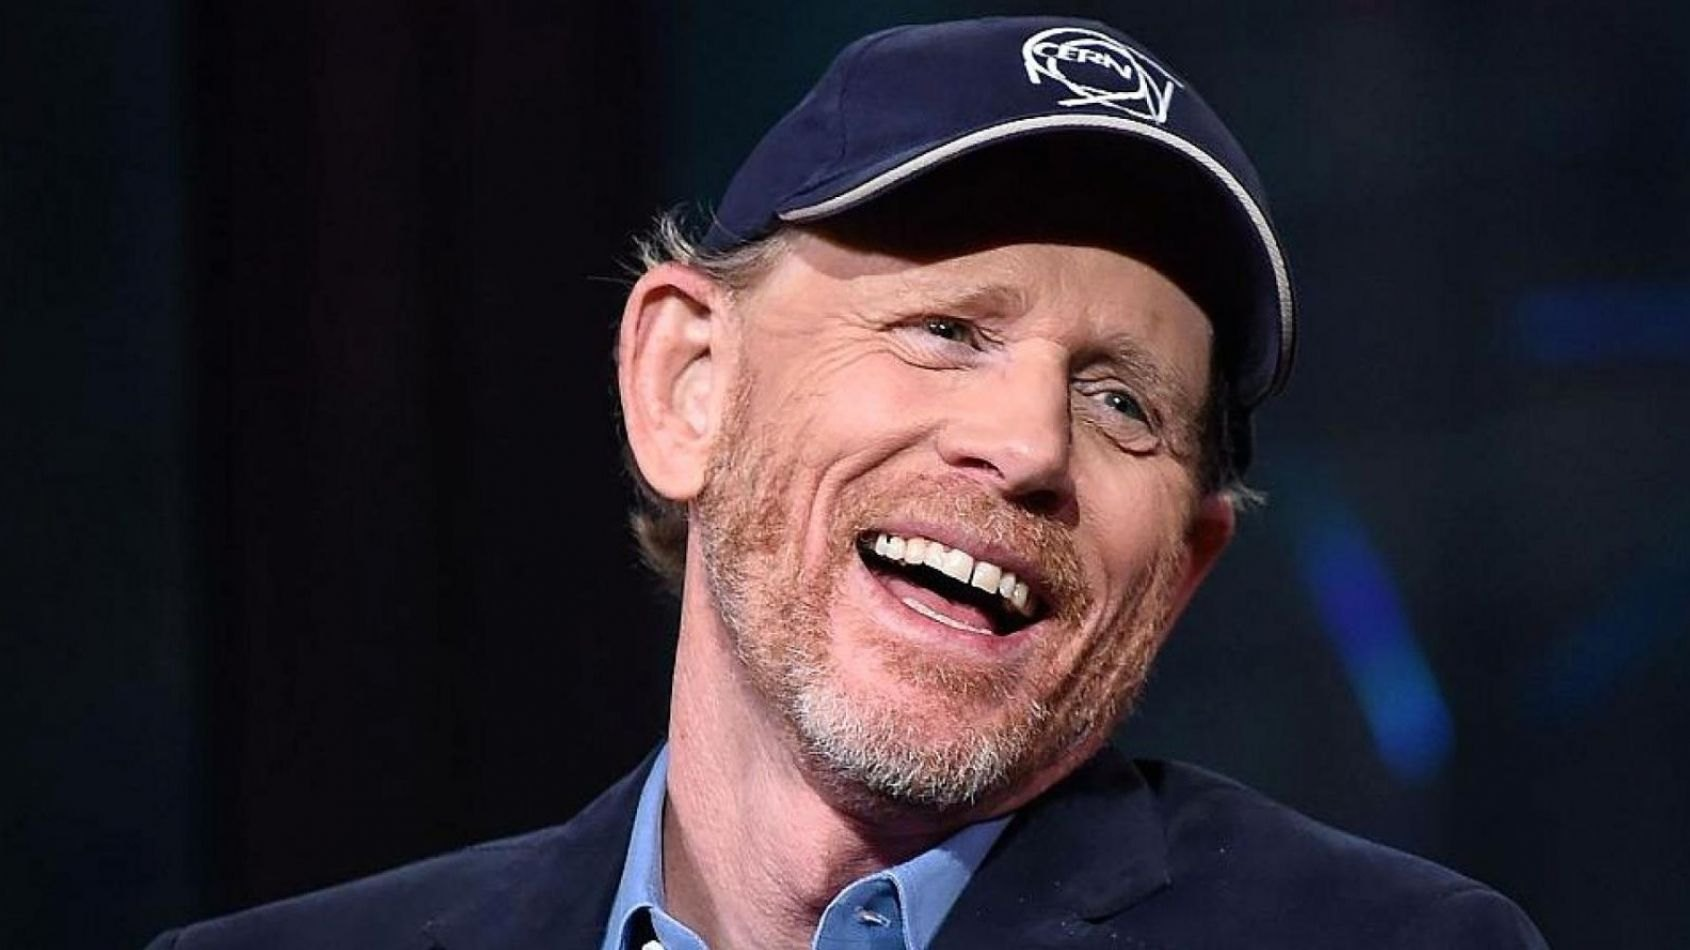 Ron Howard dévoile des photos de droïdes